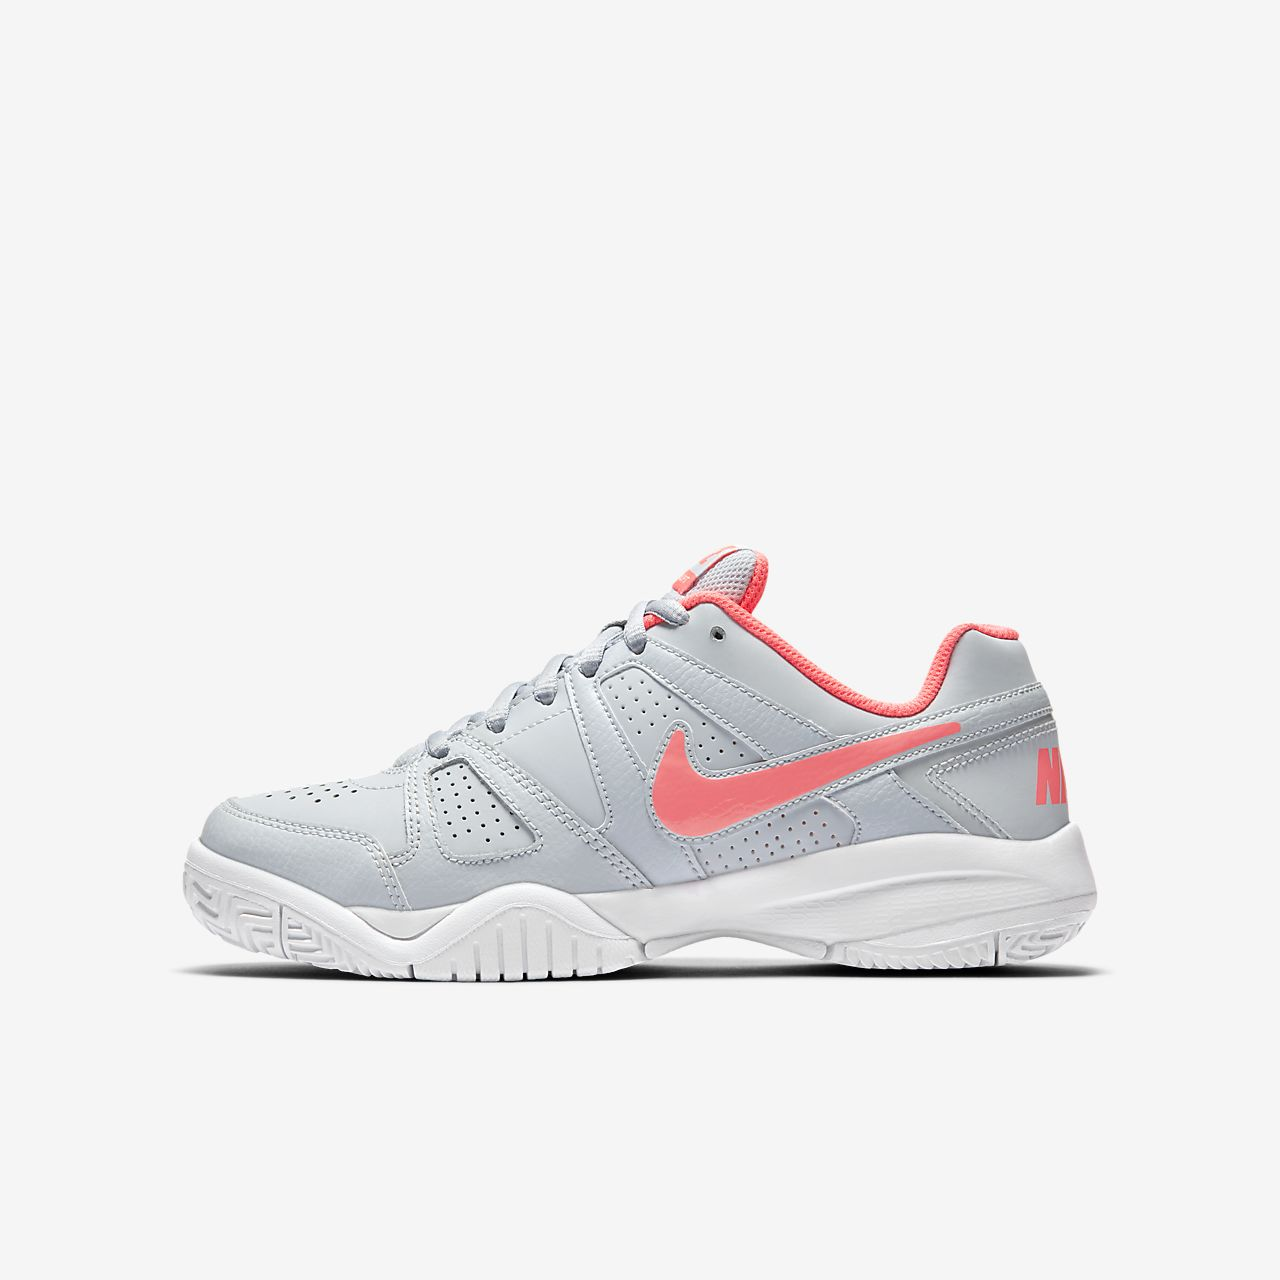 NikeCourt City Court 7 Tennisschoen kids